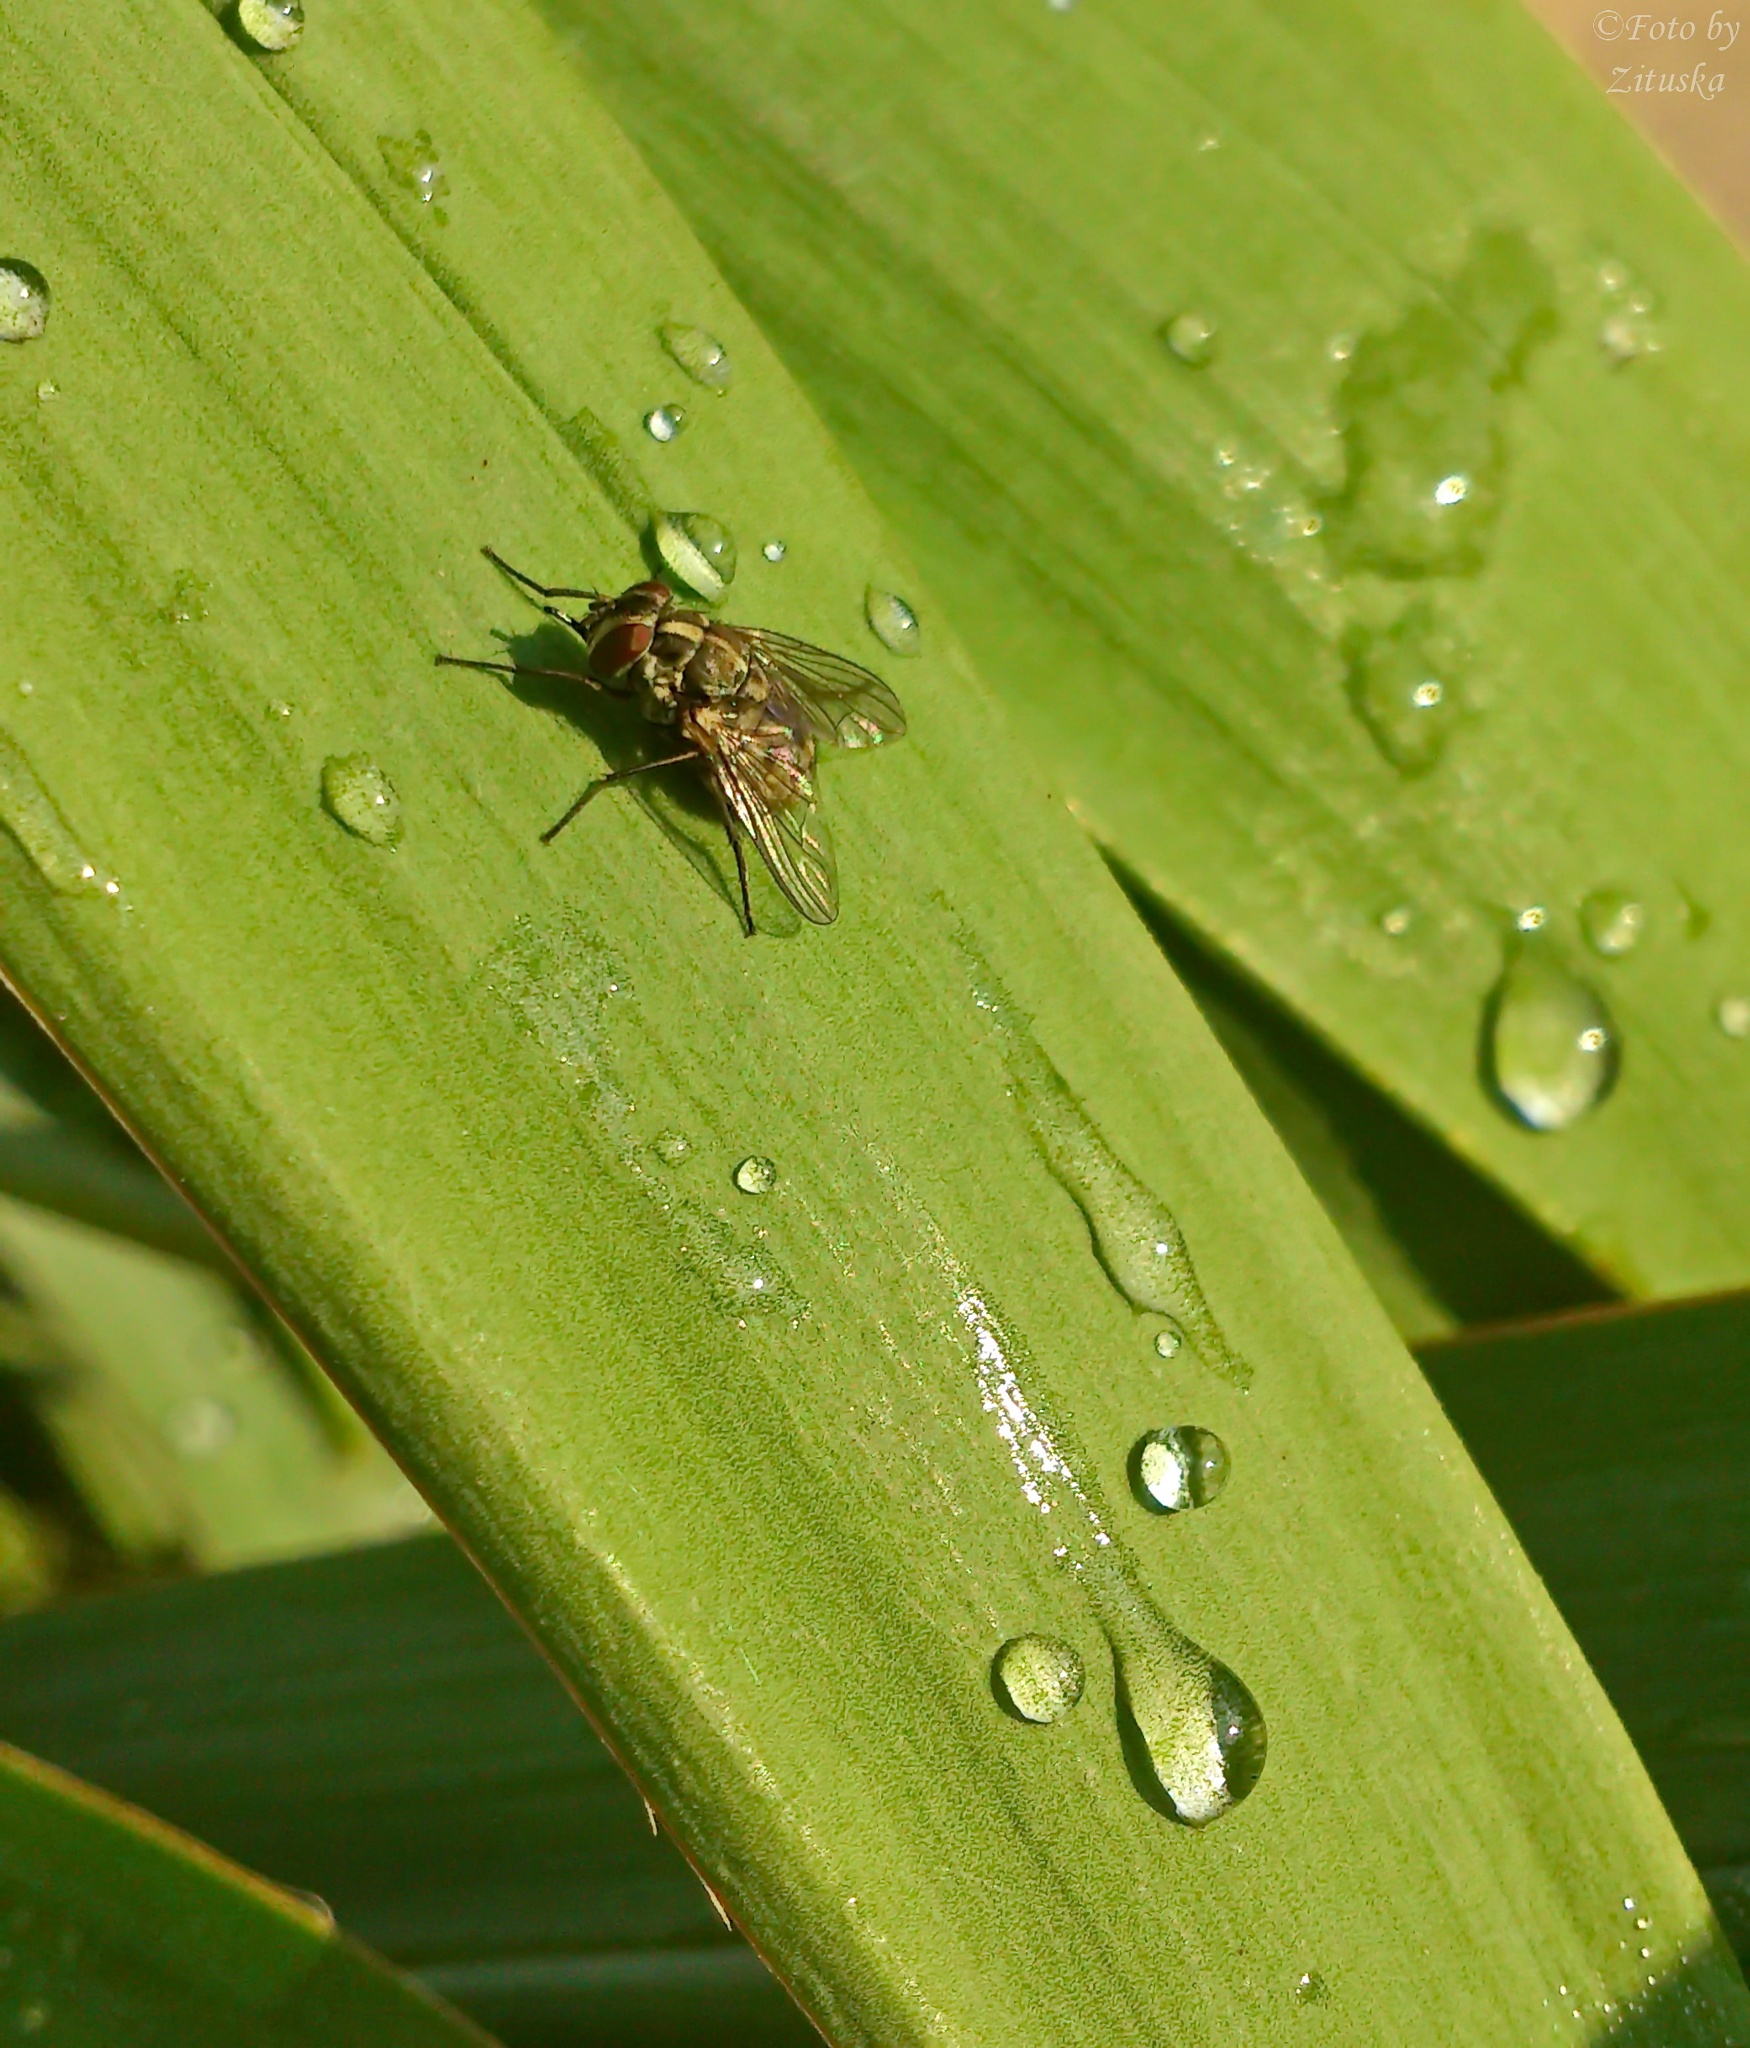 drops and a fly  by Zituska